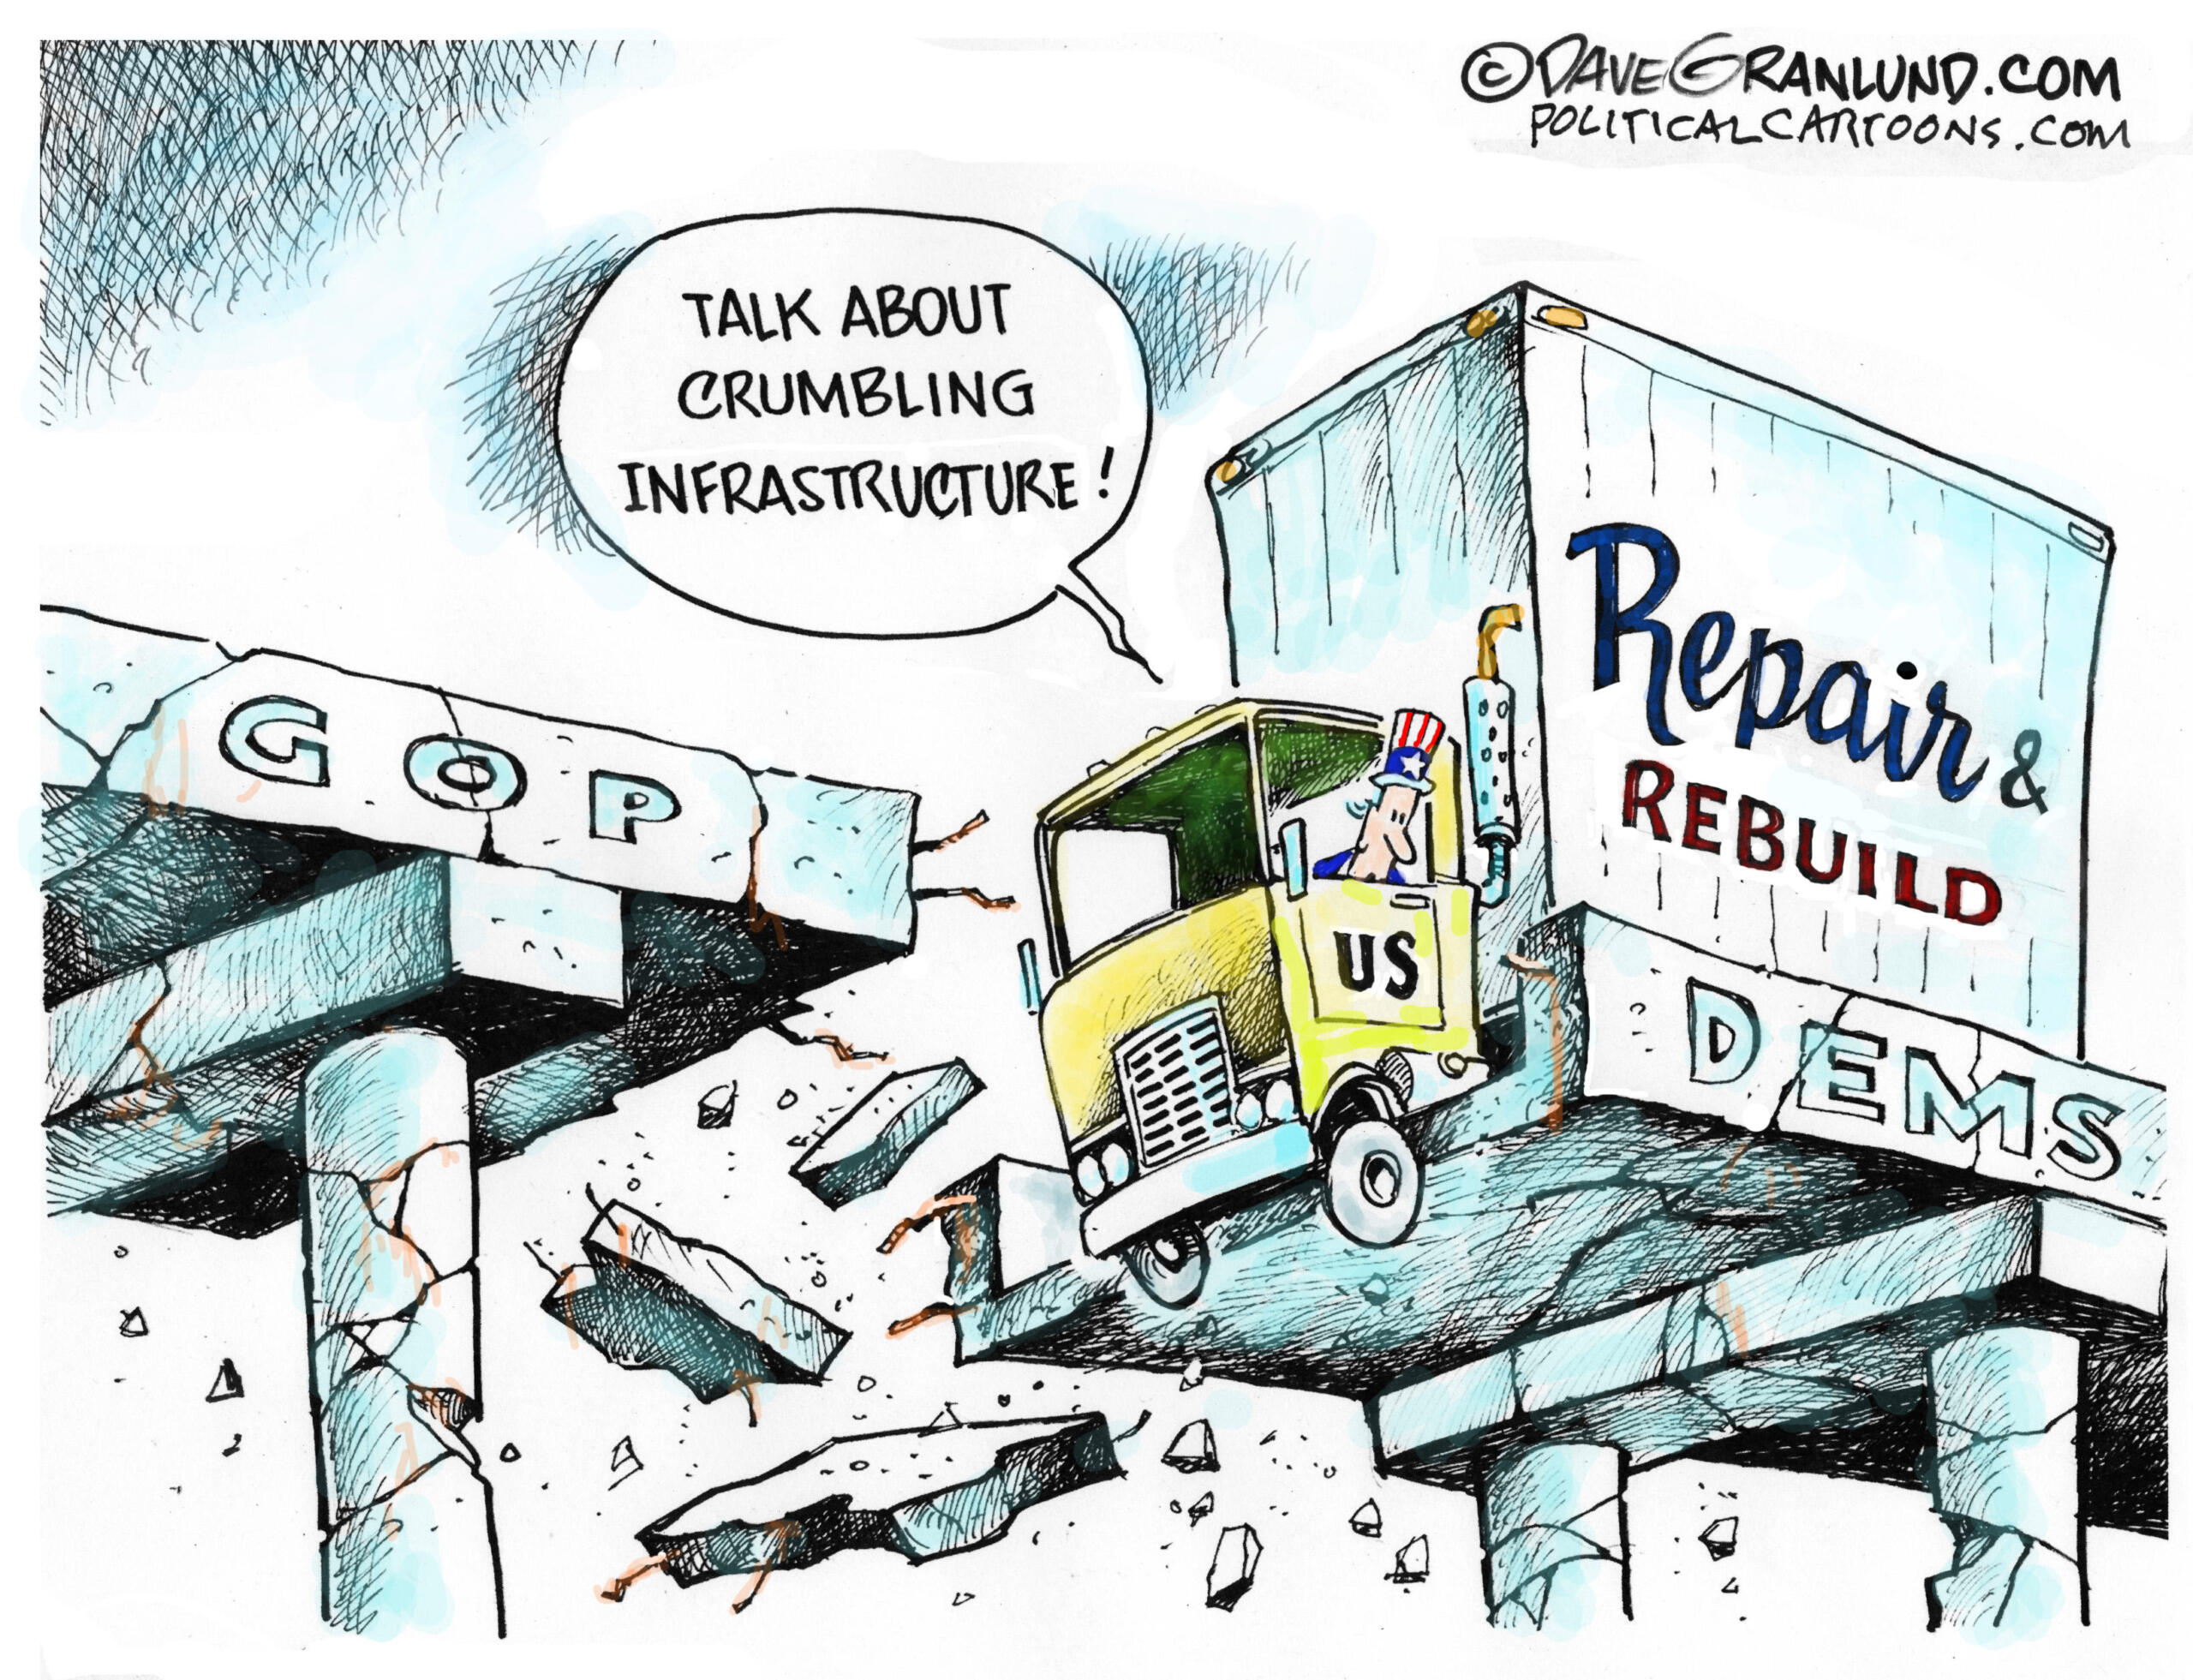 April 3: Crumbling Infrastructure